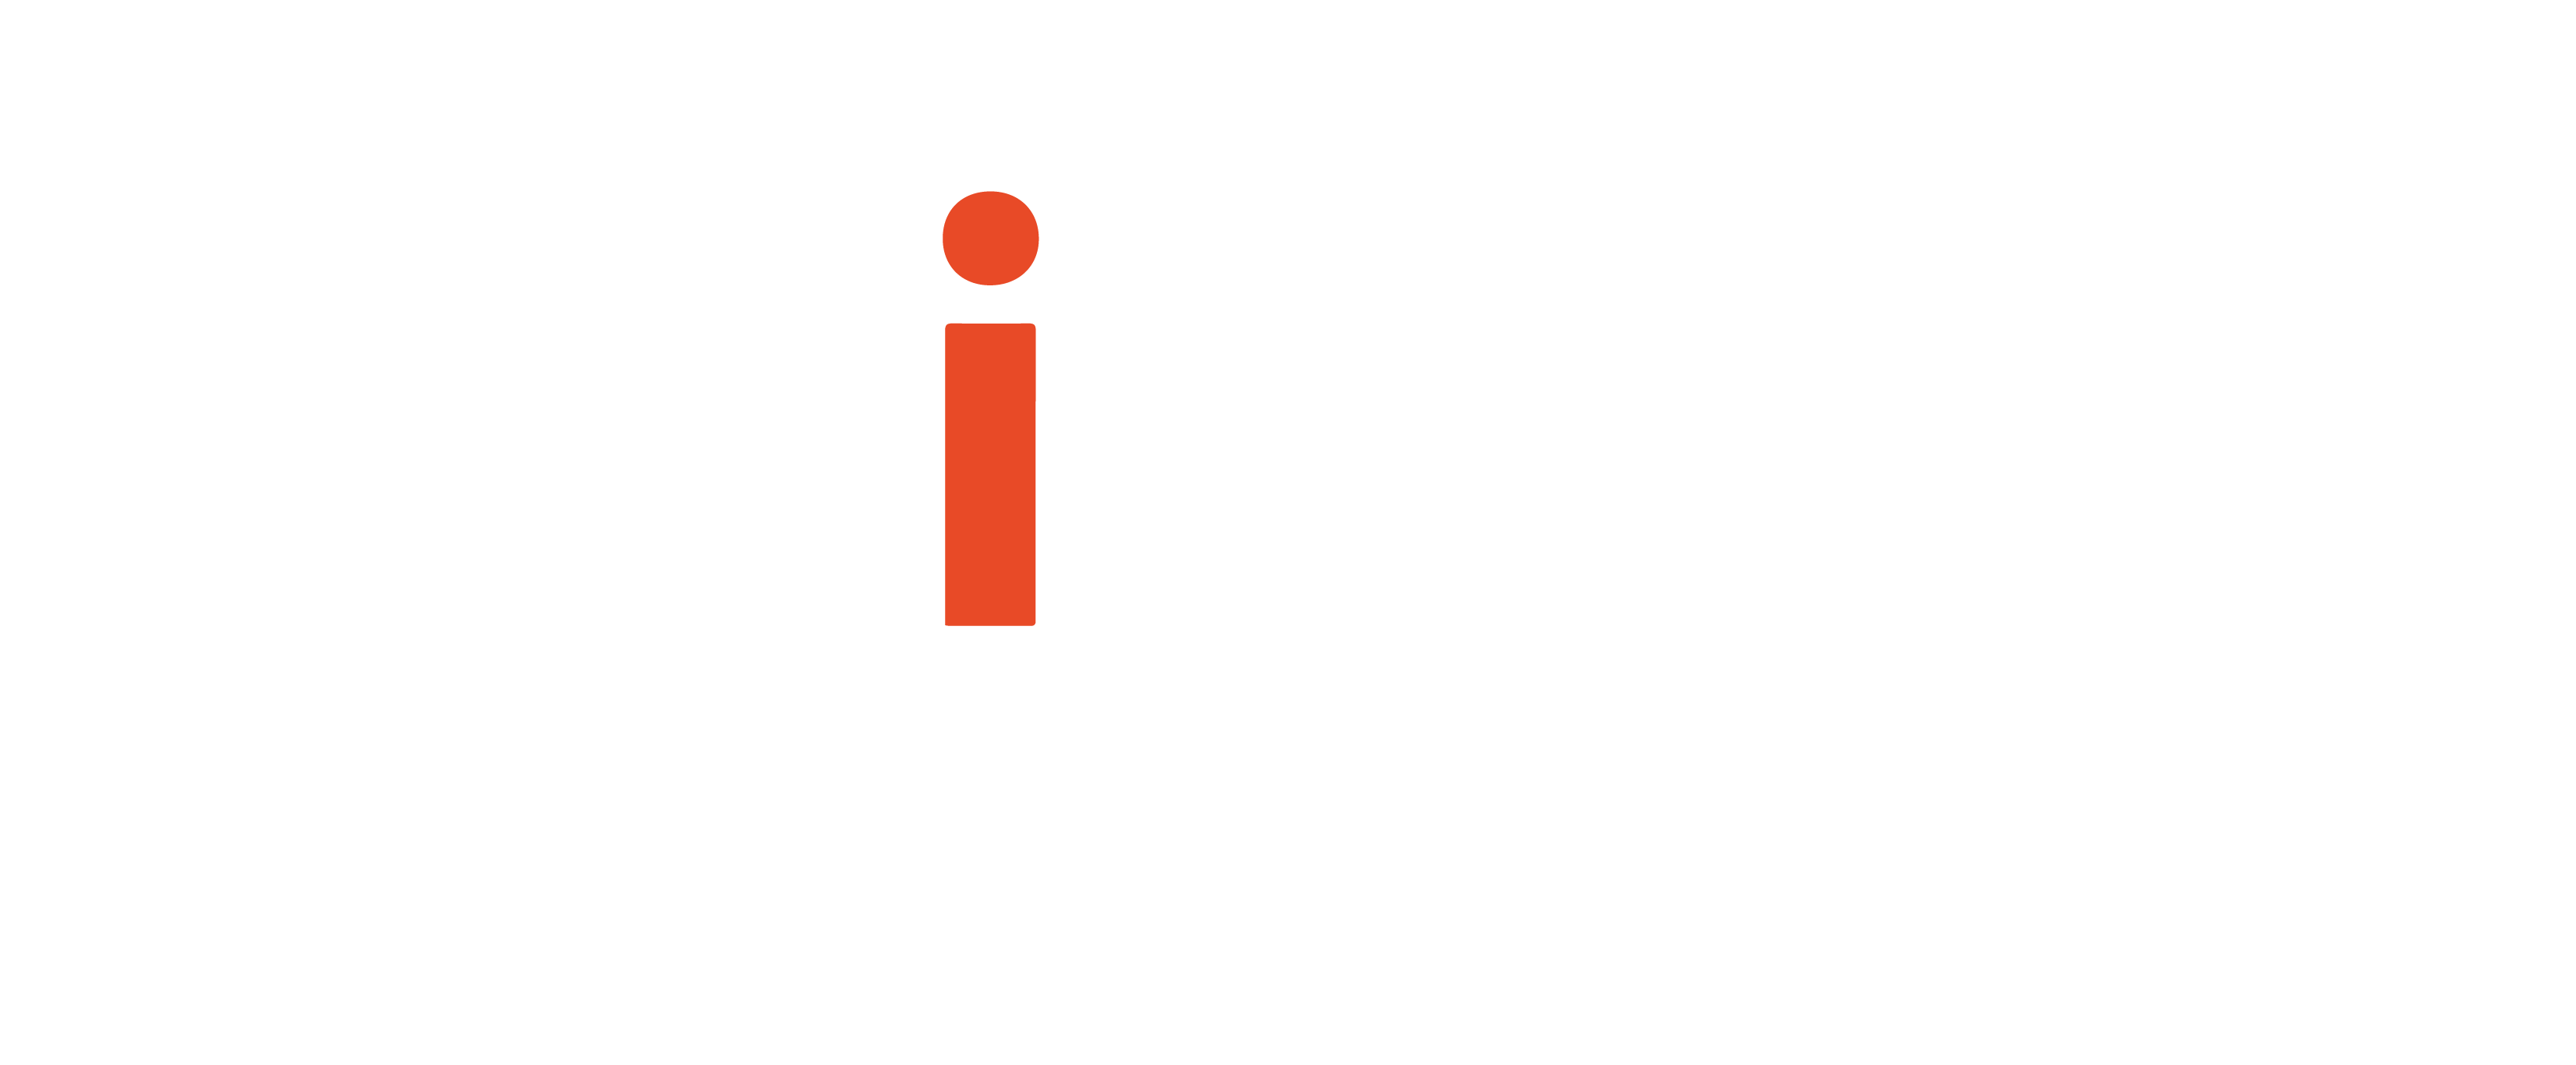 Tissue Microenvironment (TiMe) Training Program